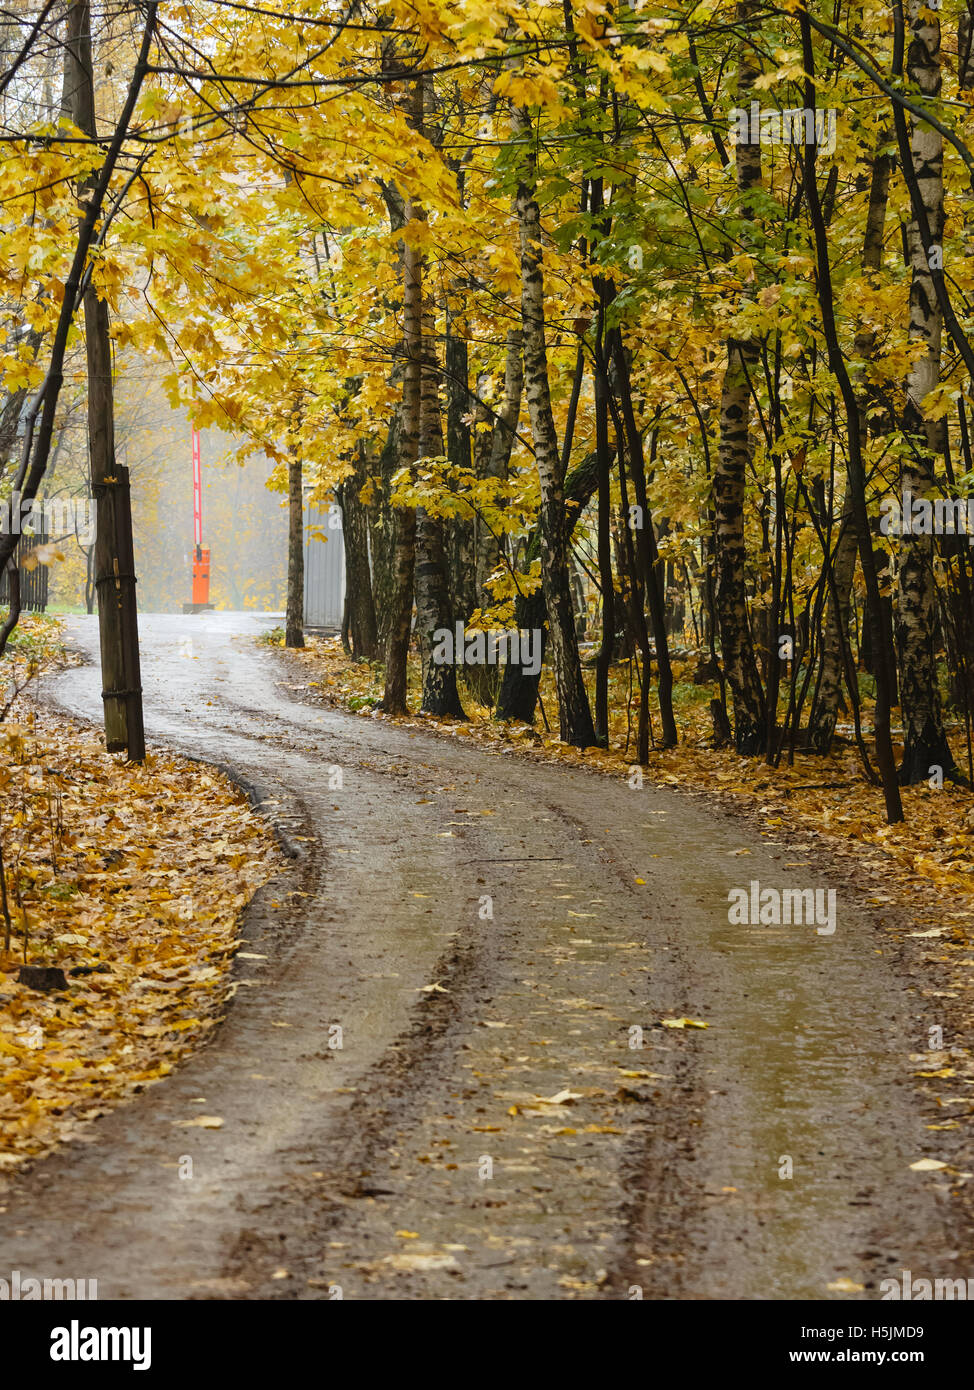 Twisting road in an autumn forest park - Stock Image